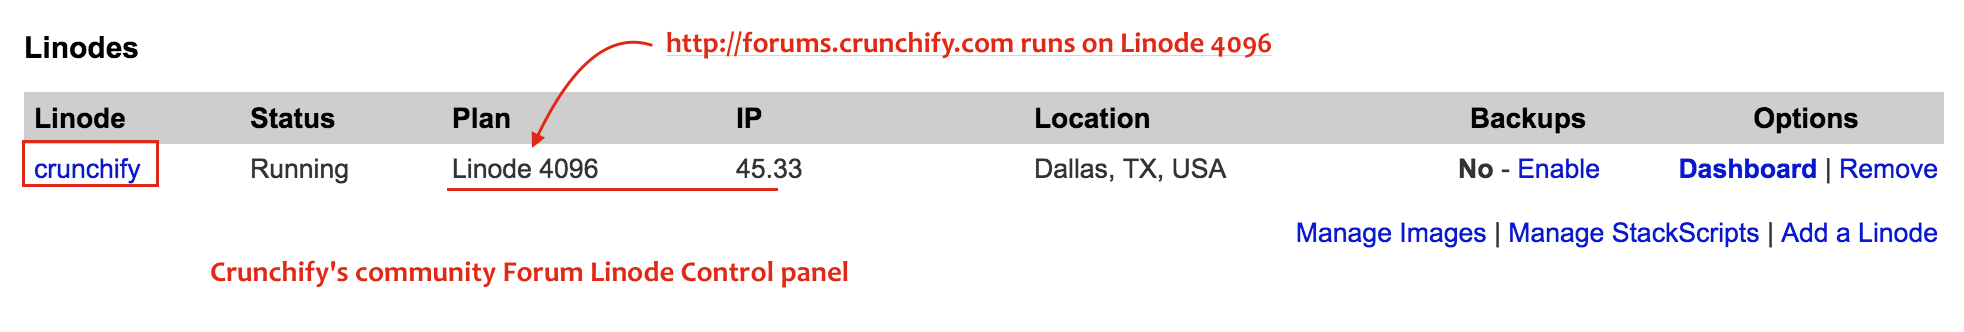 Crunchify's community Forum Linode Control panel